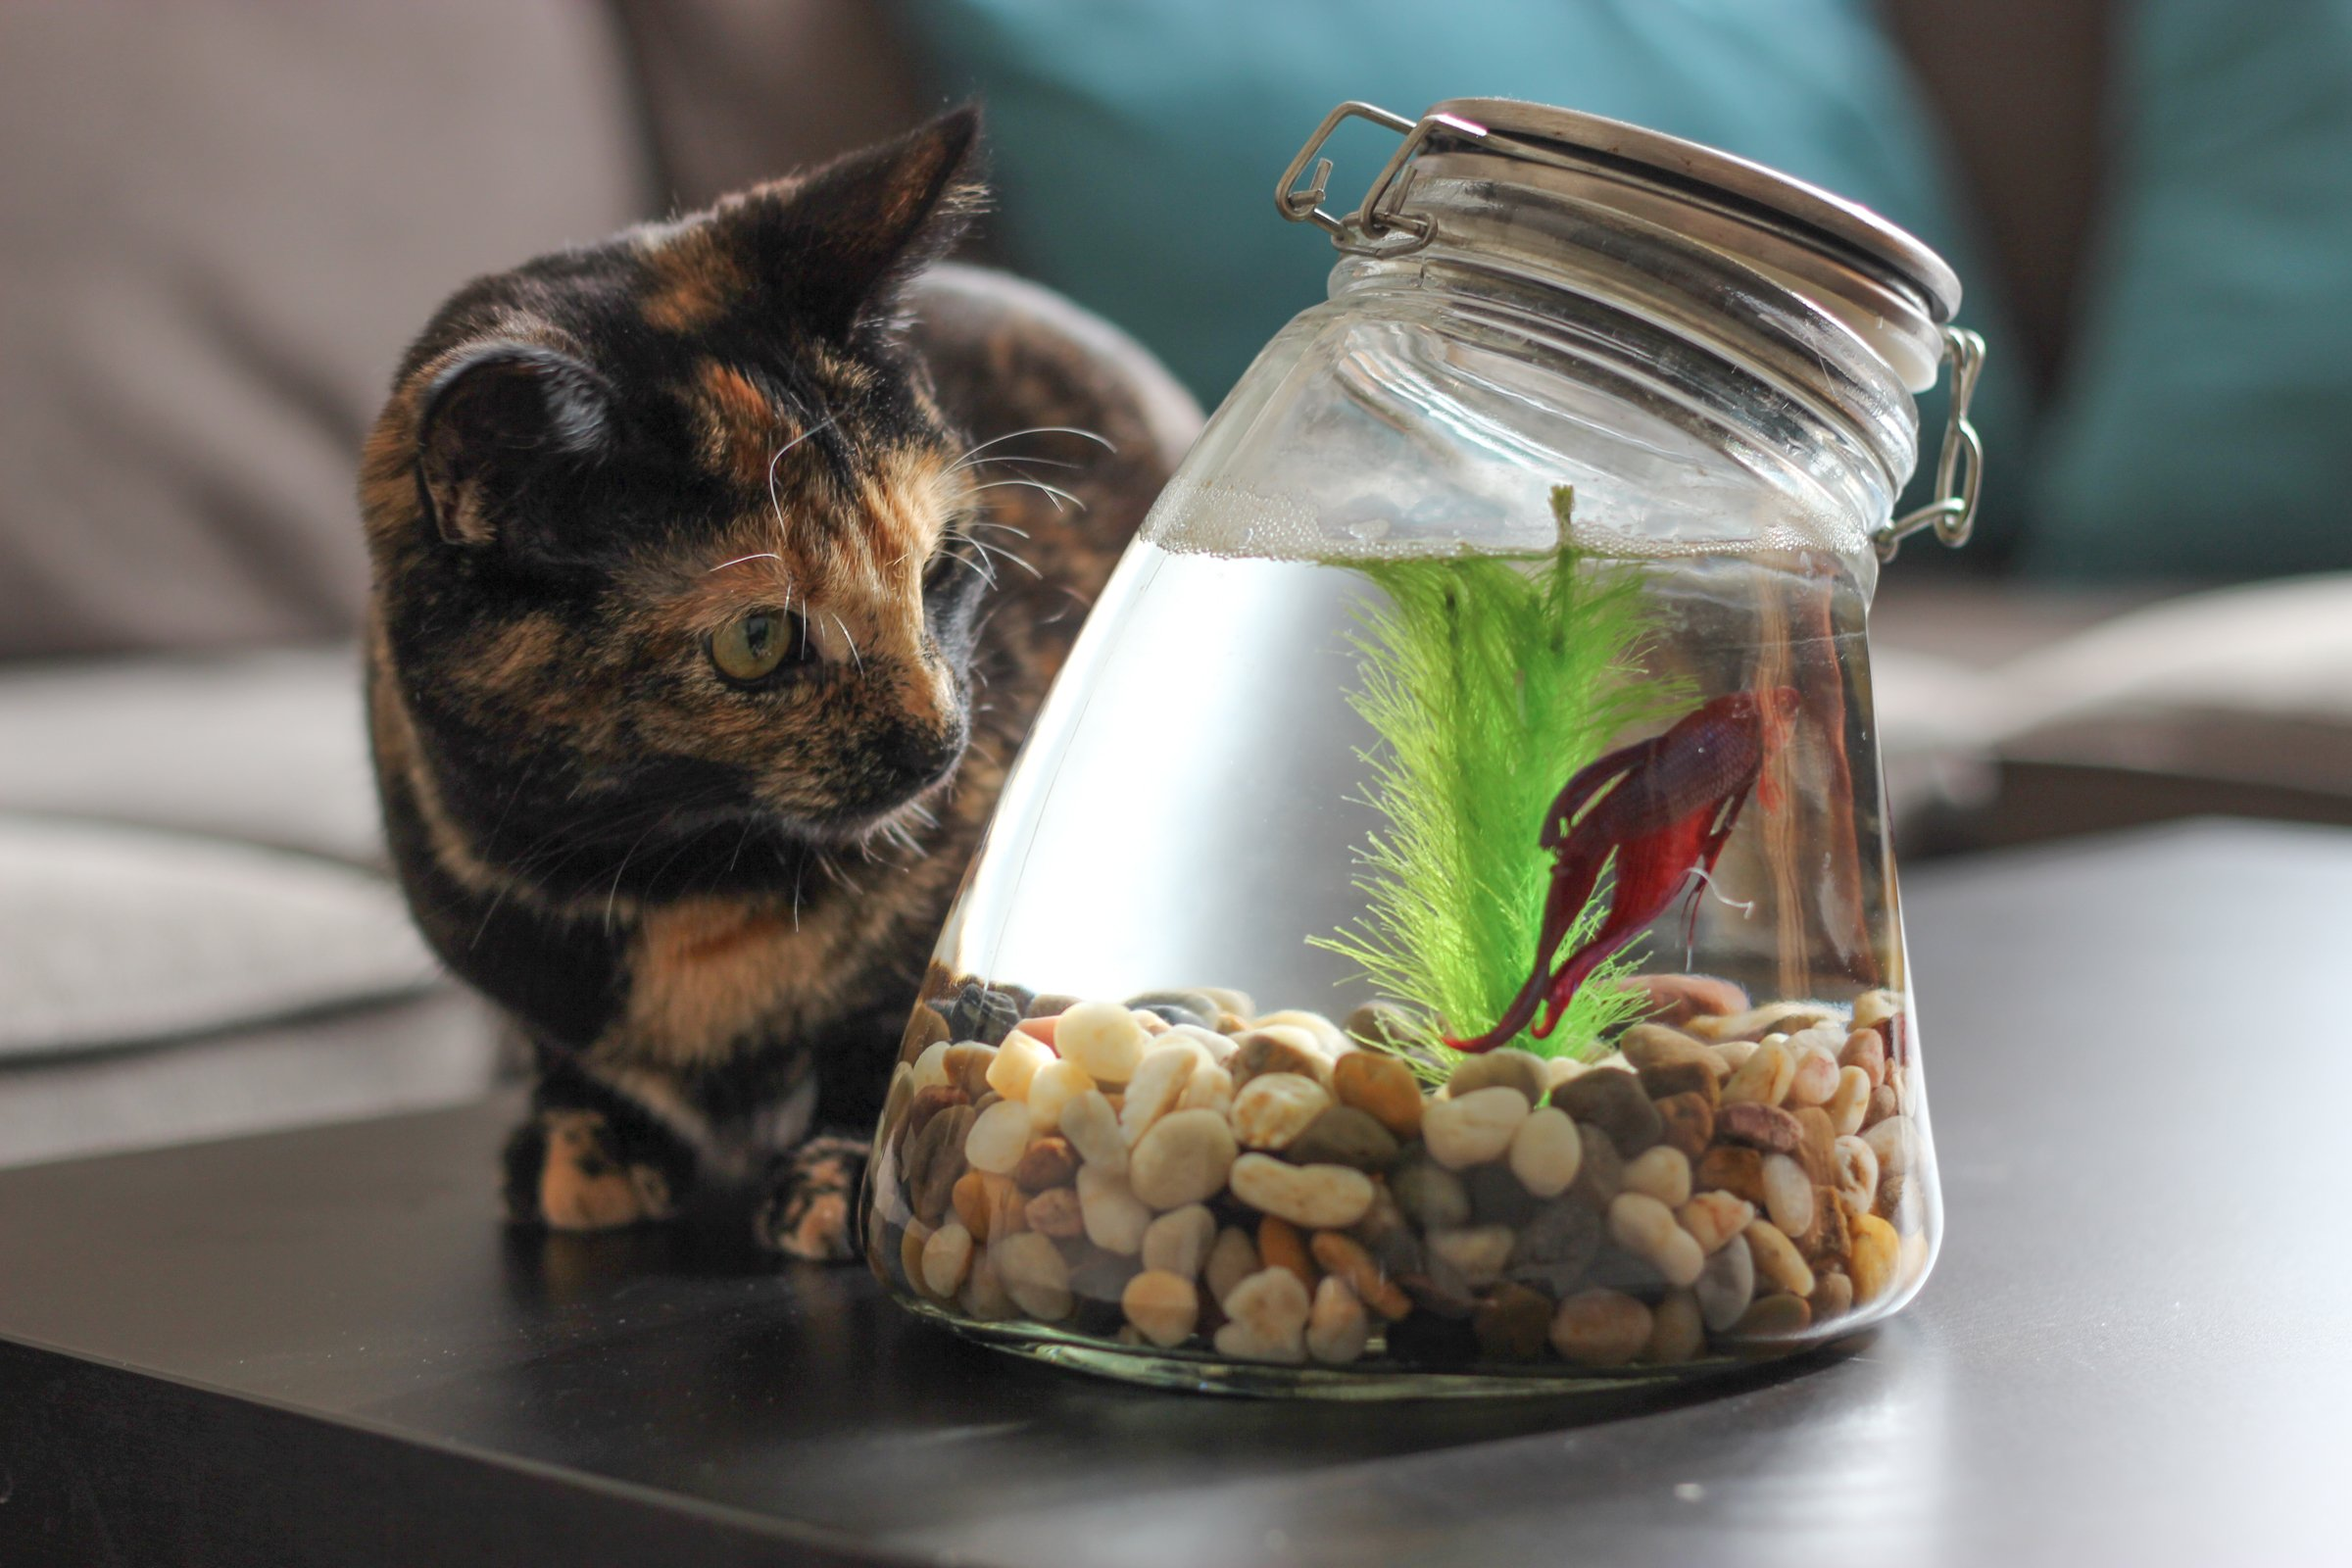 Free stock photo of cat watching fish in jar for Fish in a jar